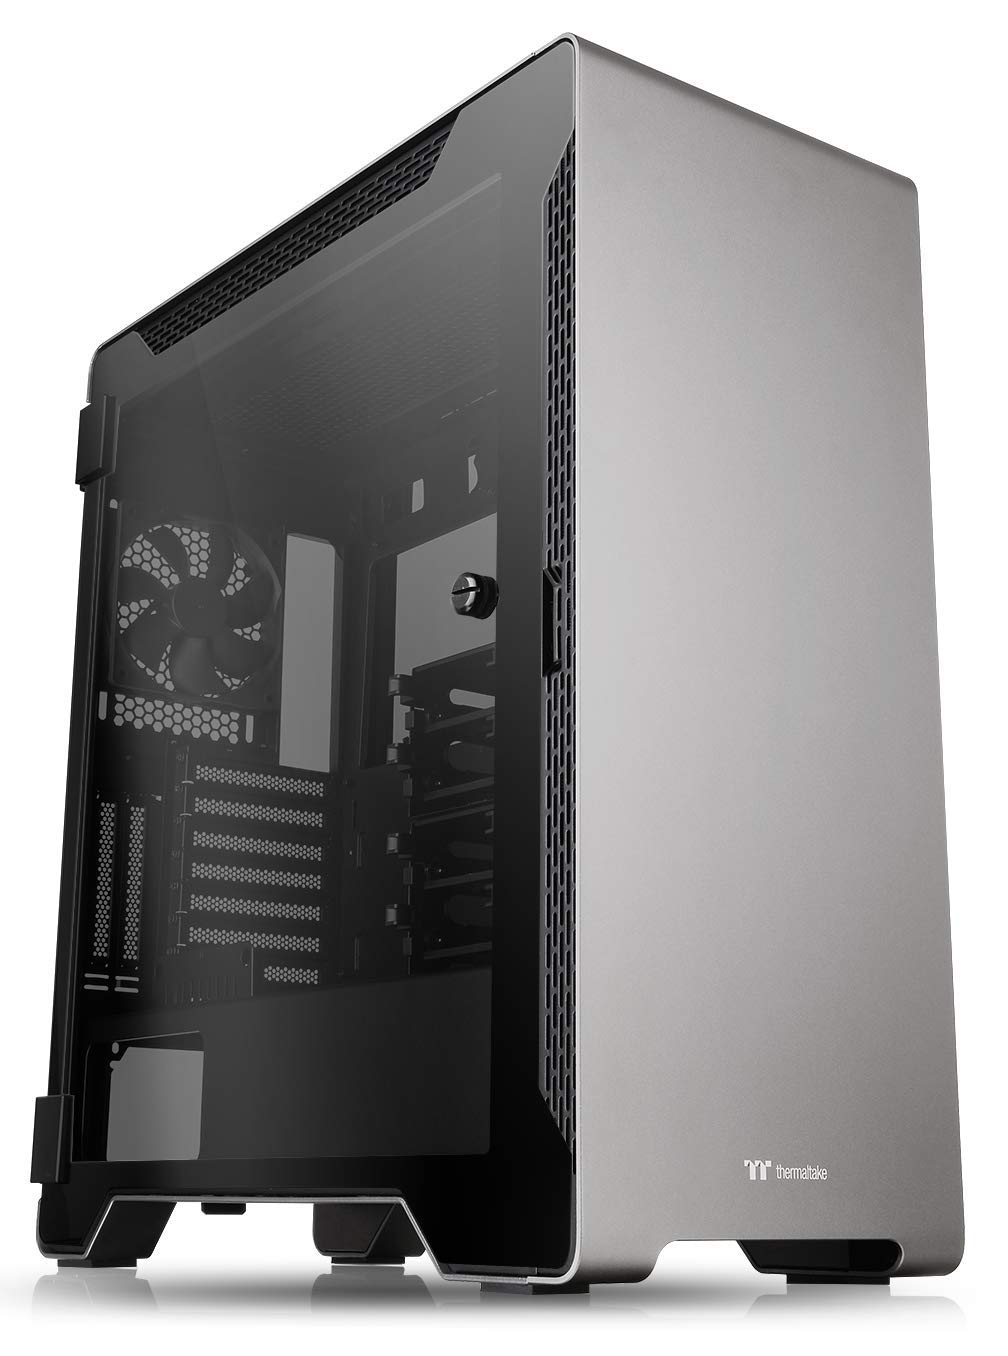 Thermaltake A500 Aluminum Tempered Glass ATX Mid Tower Gaming Computer Case with 3 Fans Pre-Installed CA-1L3-00M9WN-00, A500 Mid Tower, Gray